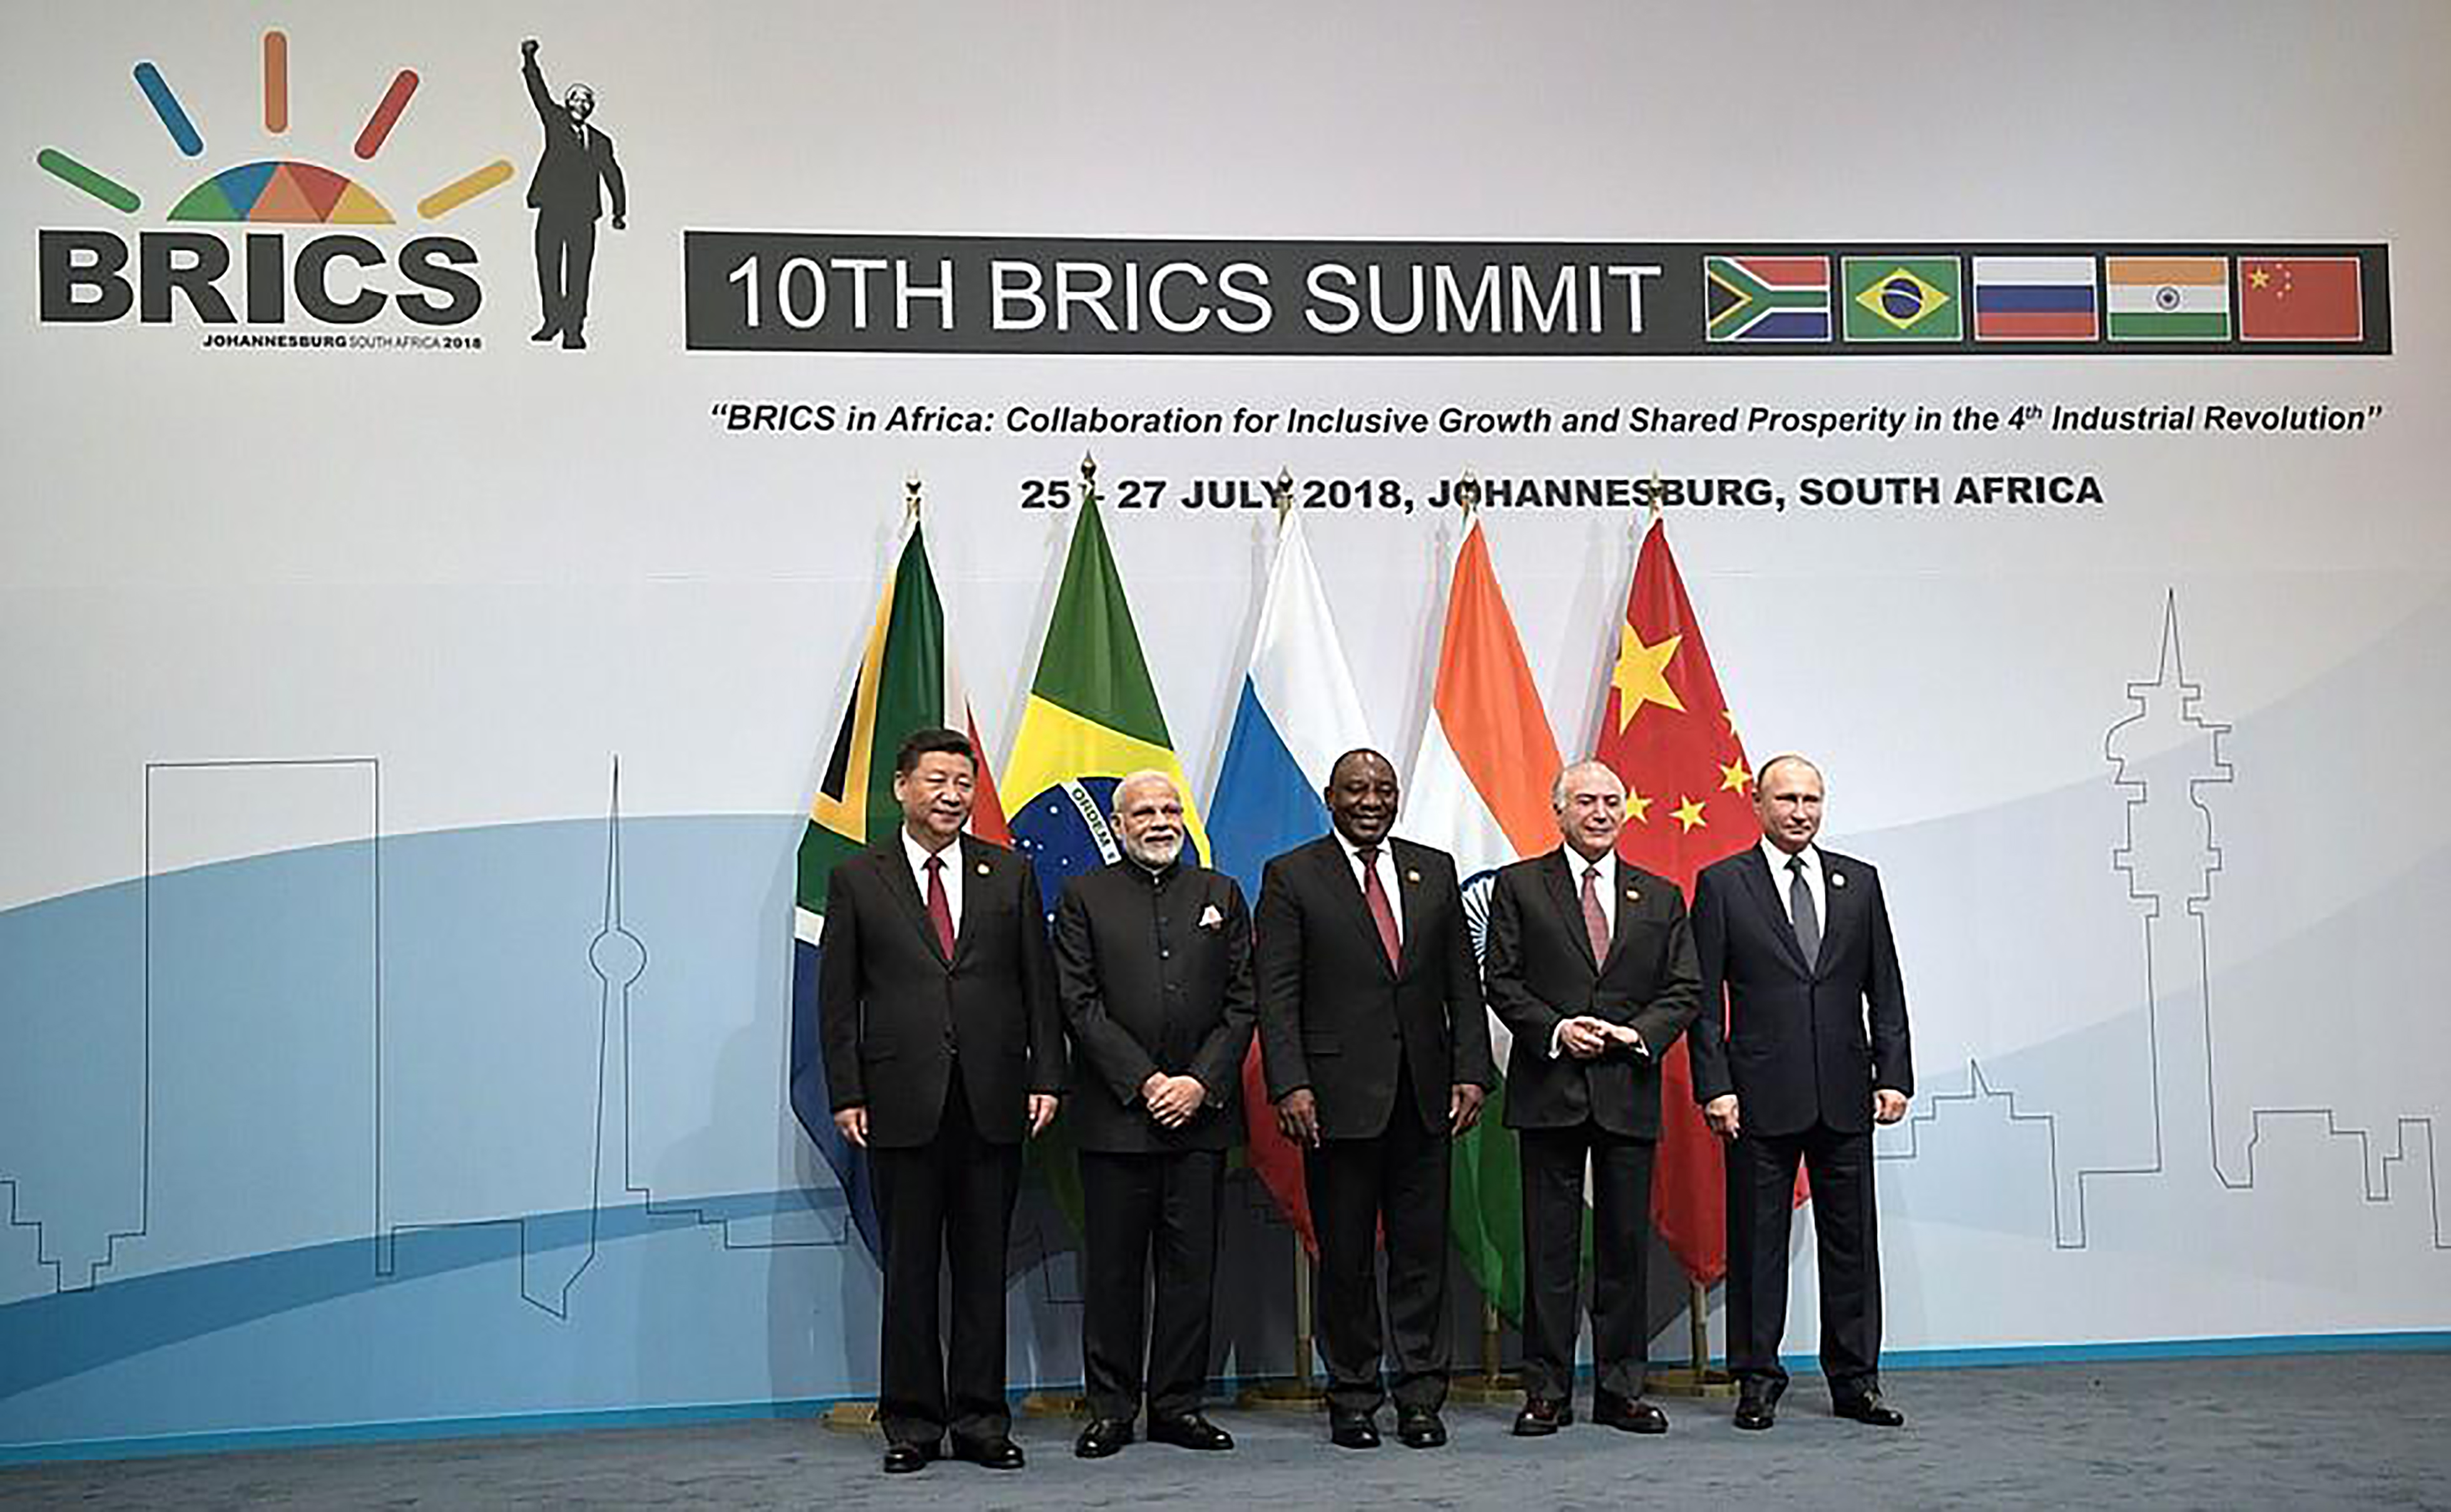 BRICS Presidents